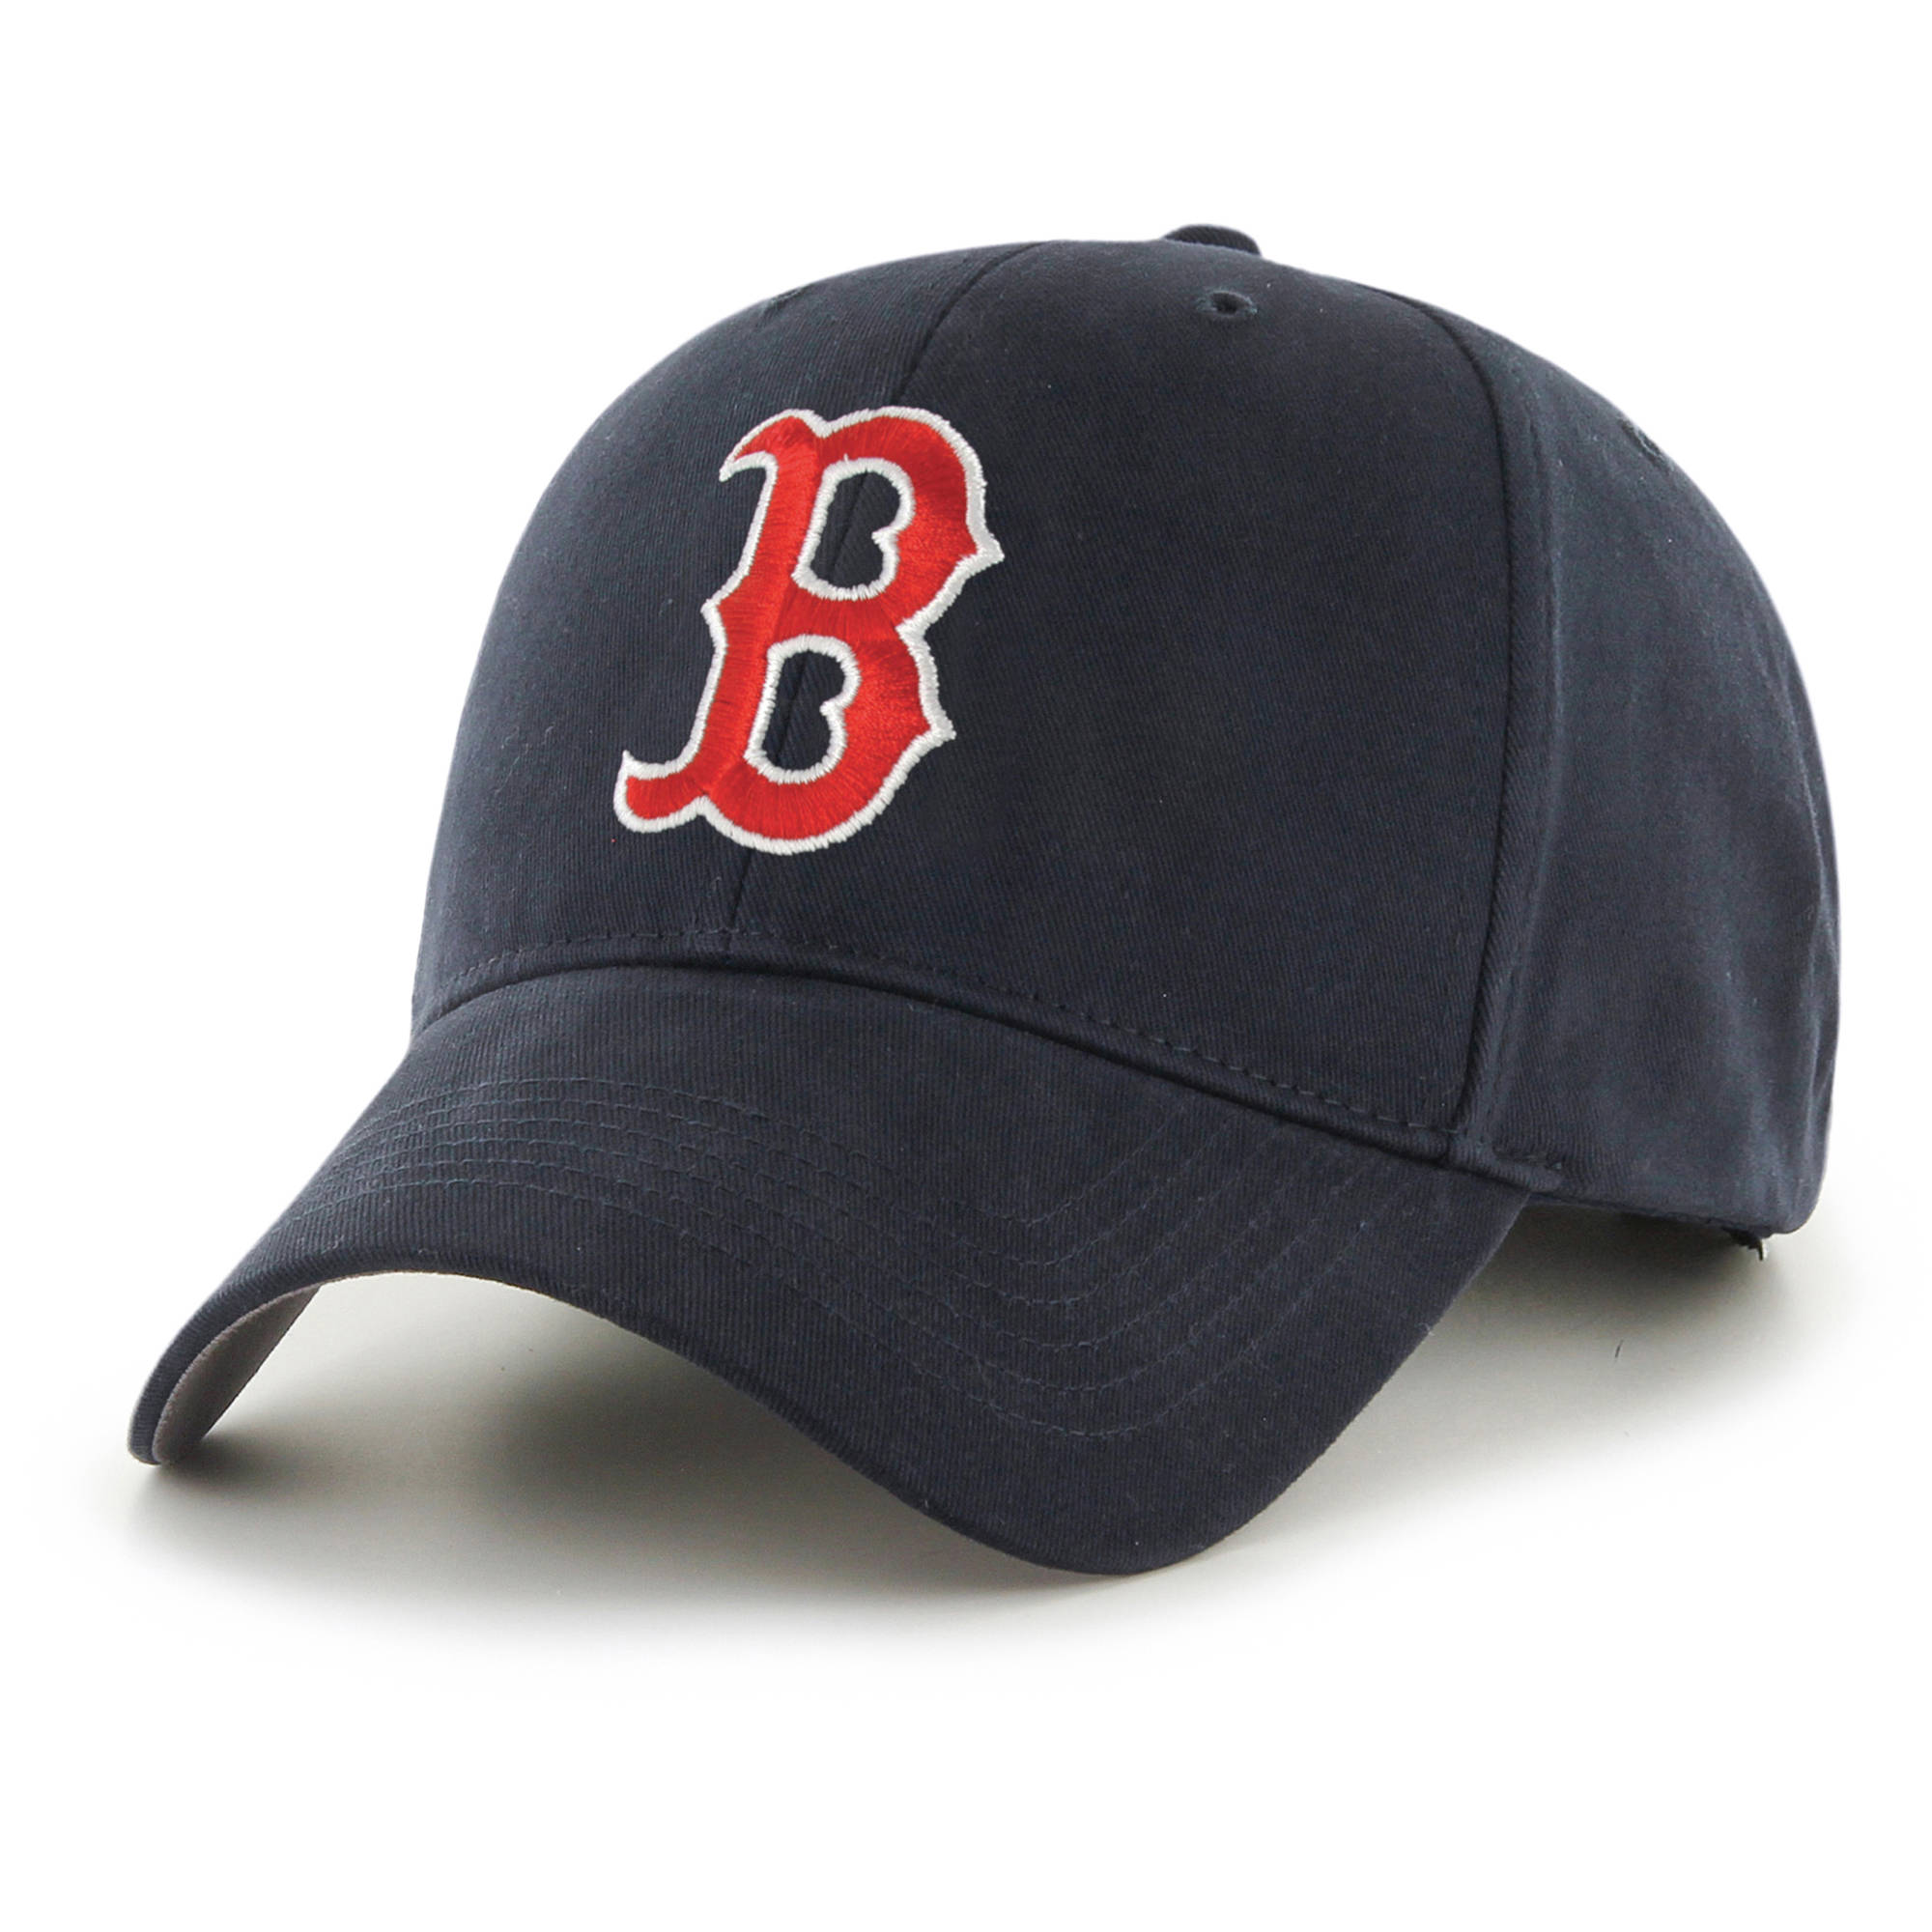 fan favorite - mlb basic cap, boston red sox - walmart